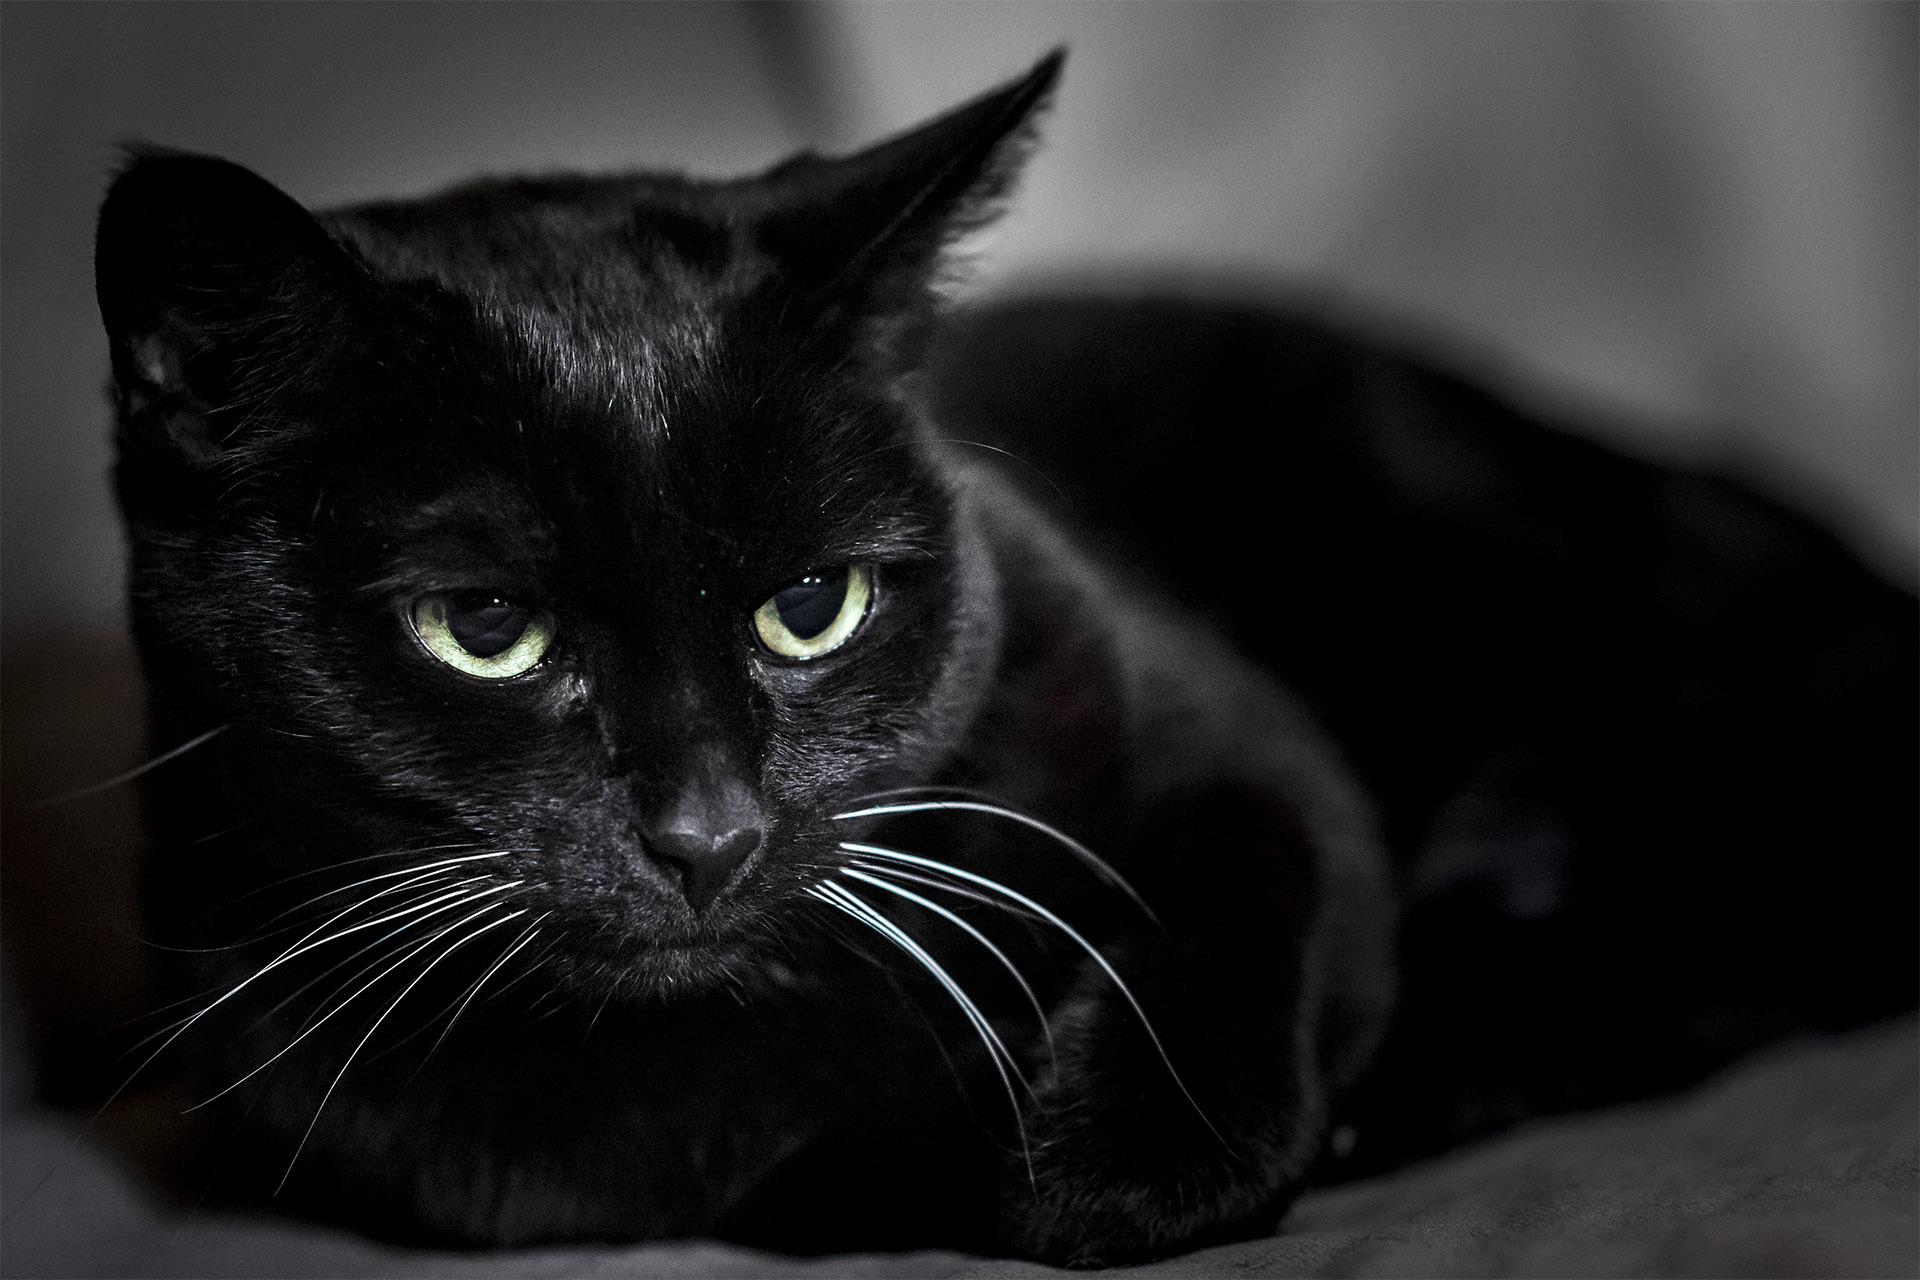 103503 download wallpaper Animals, Black Cat, Muzzle, Sight, Opinion screensavers and pictures for free